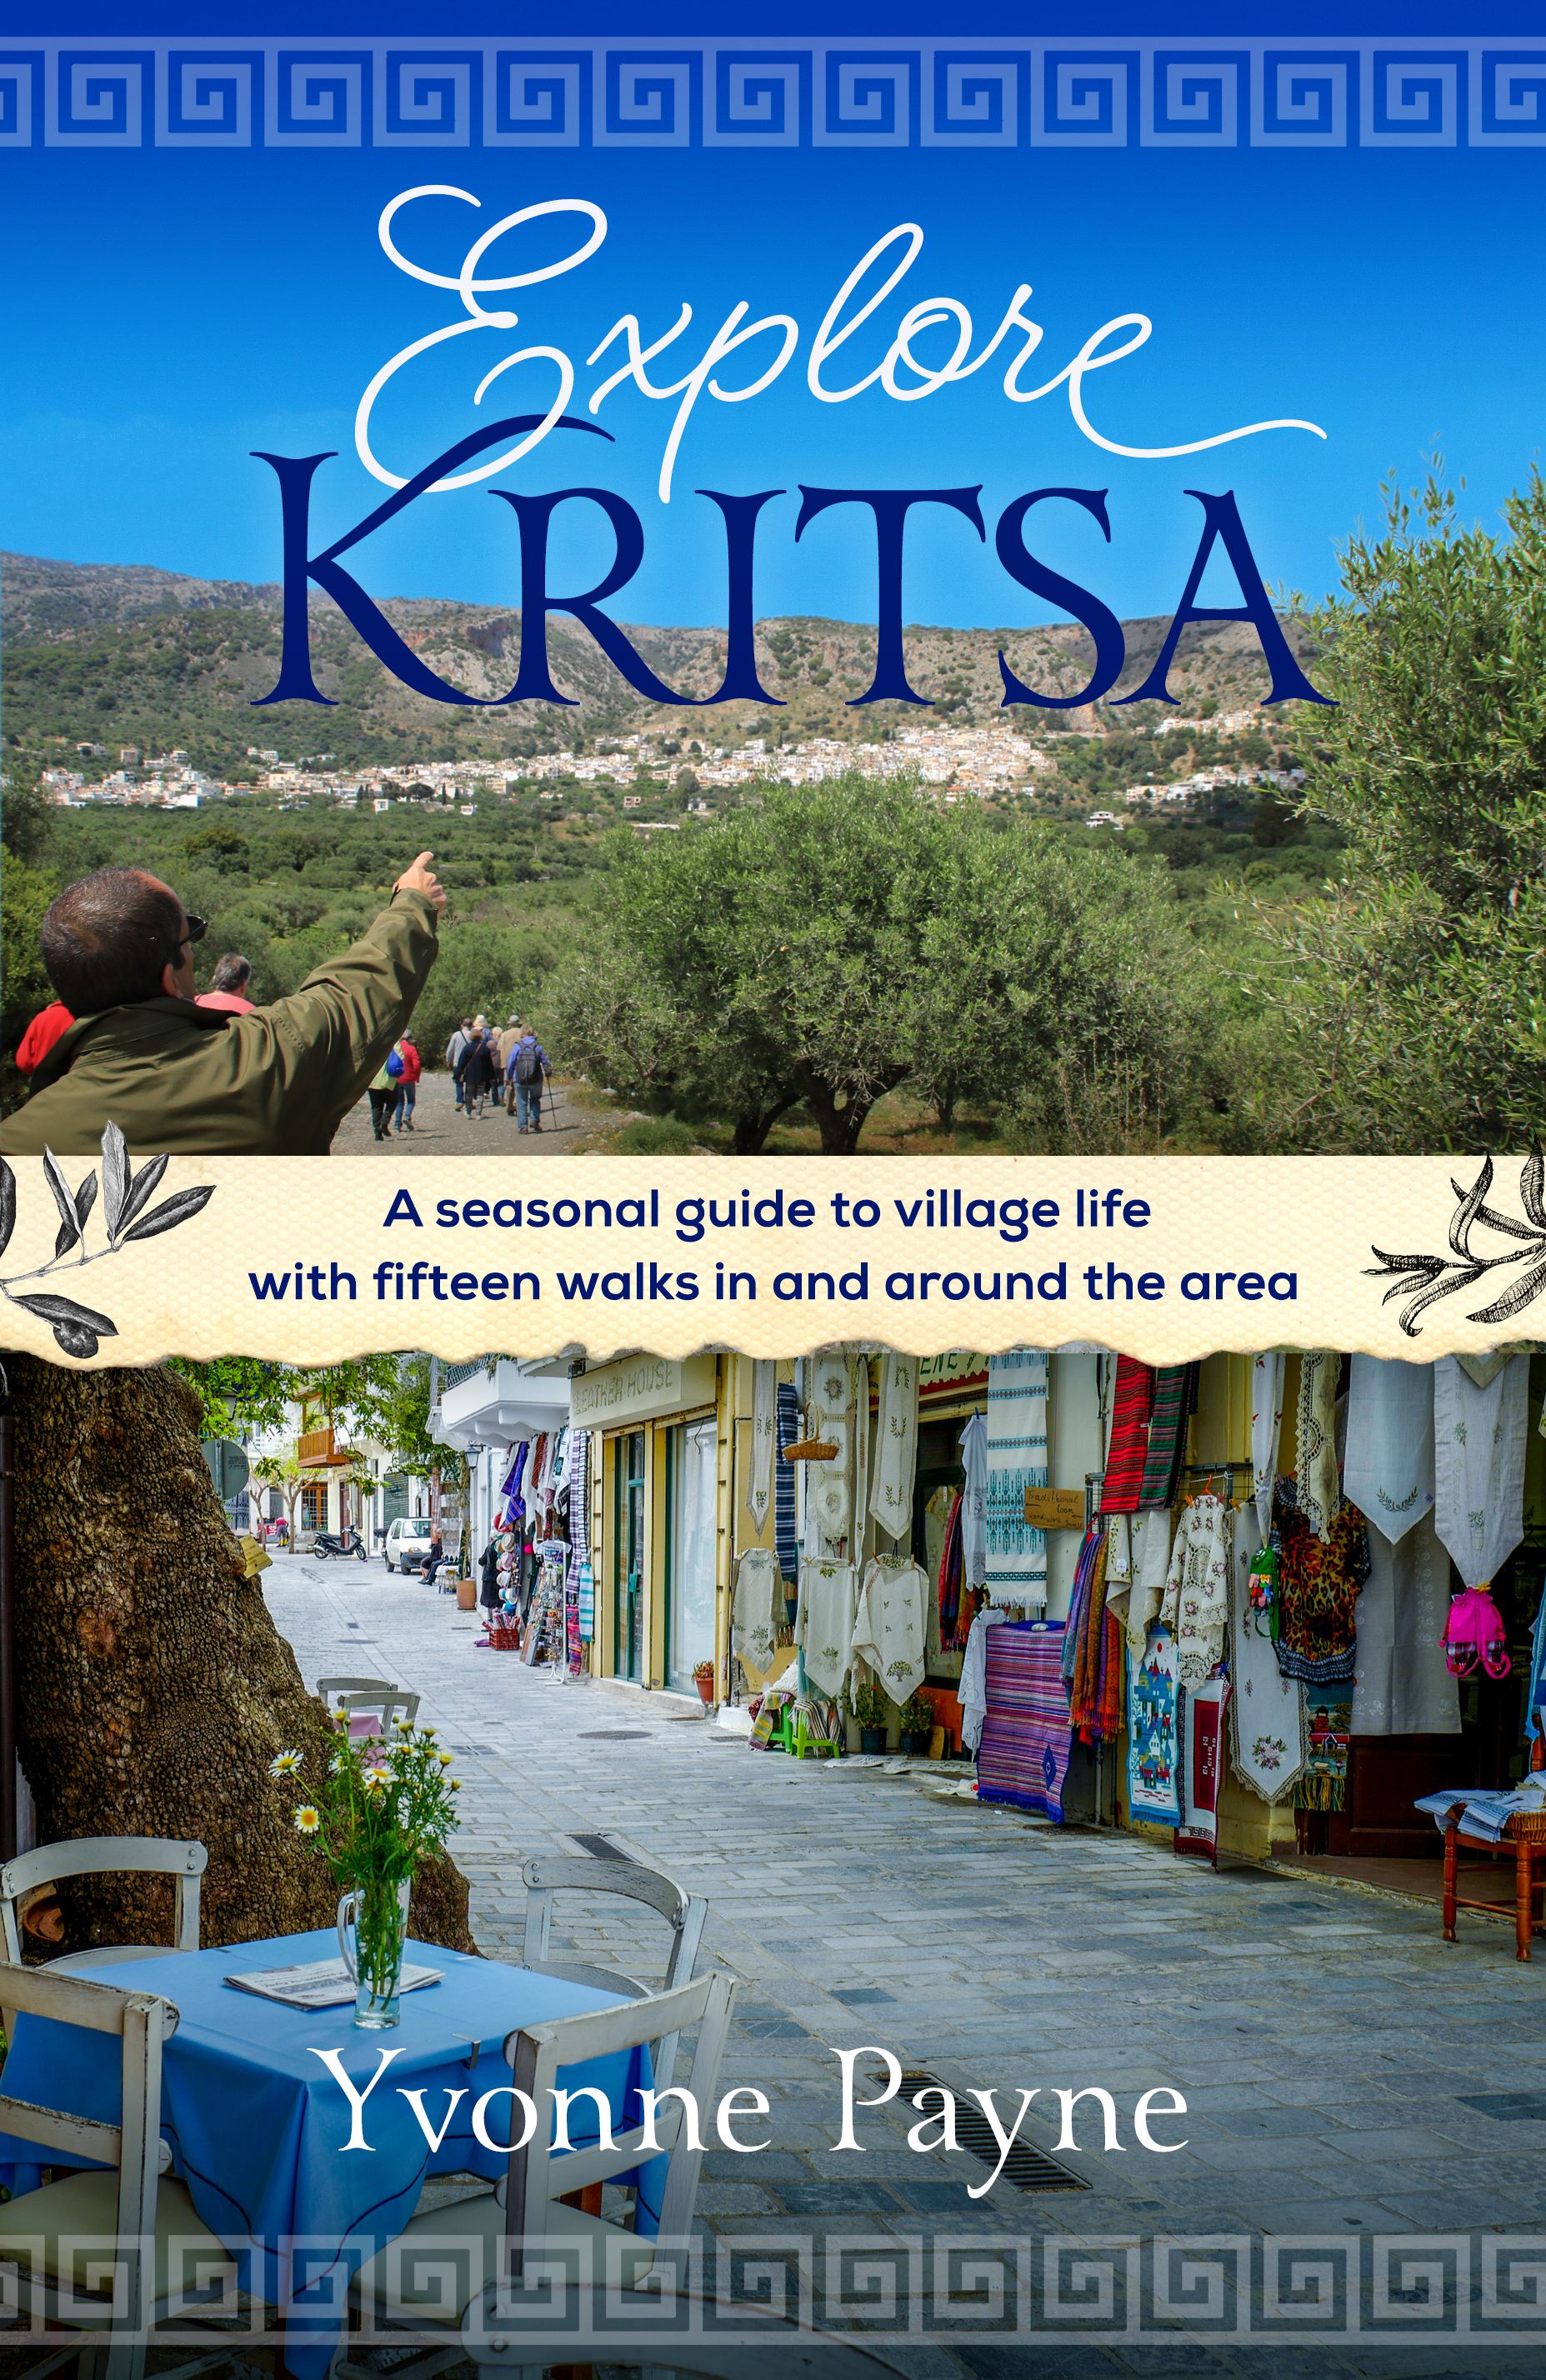 Explore Kritsa cover_02.jpg